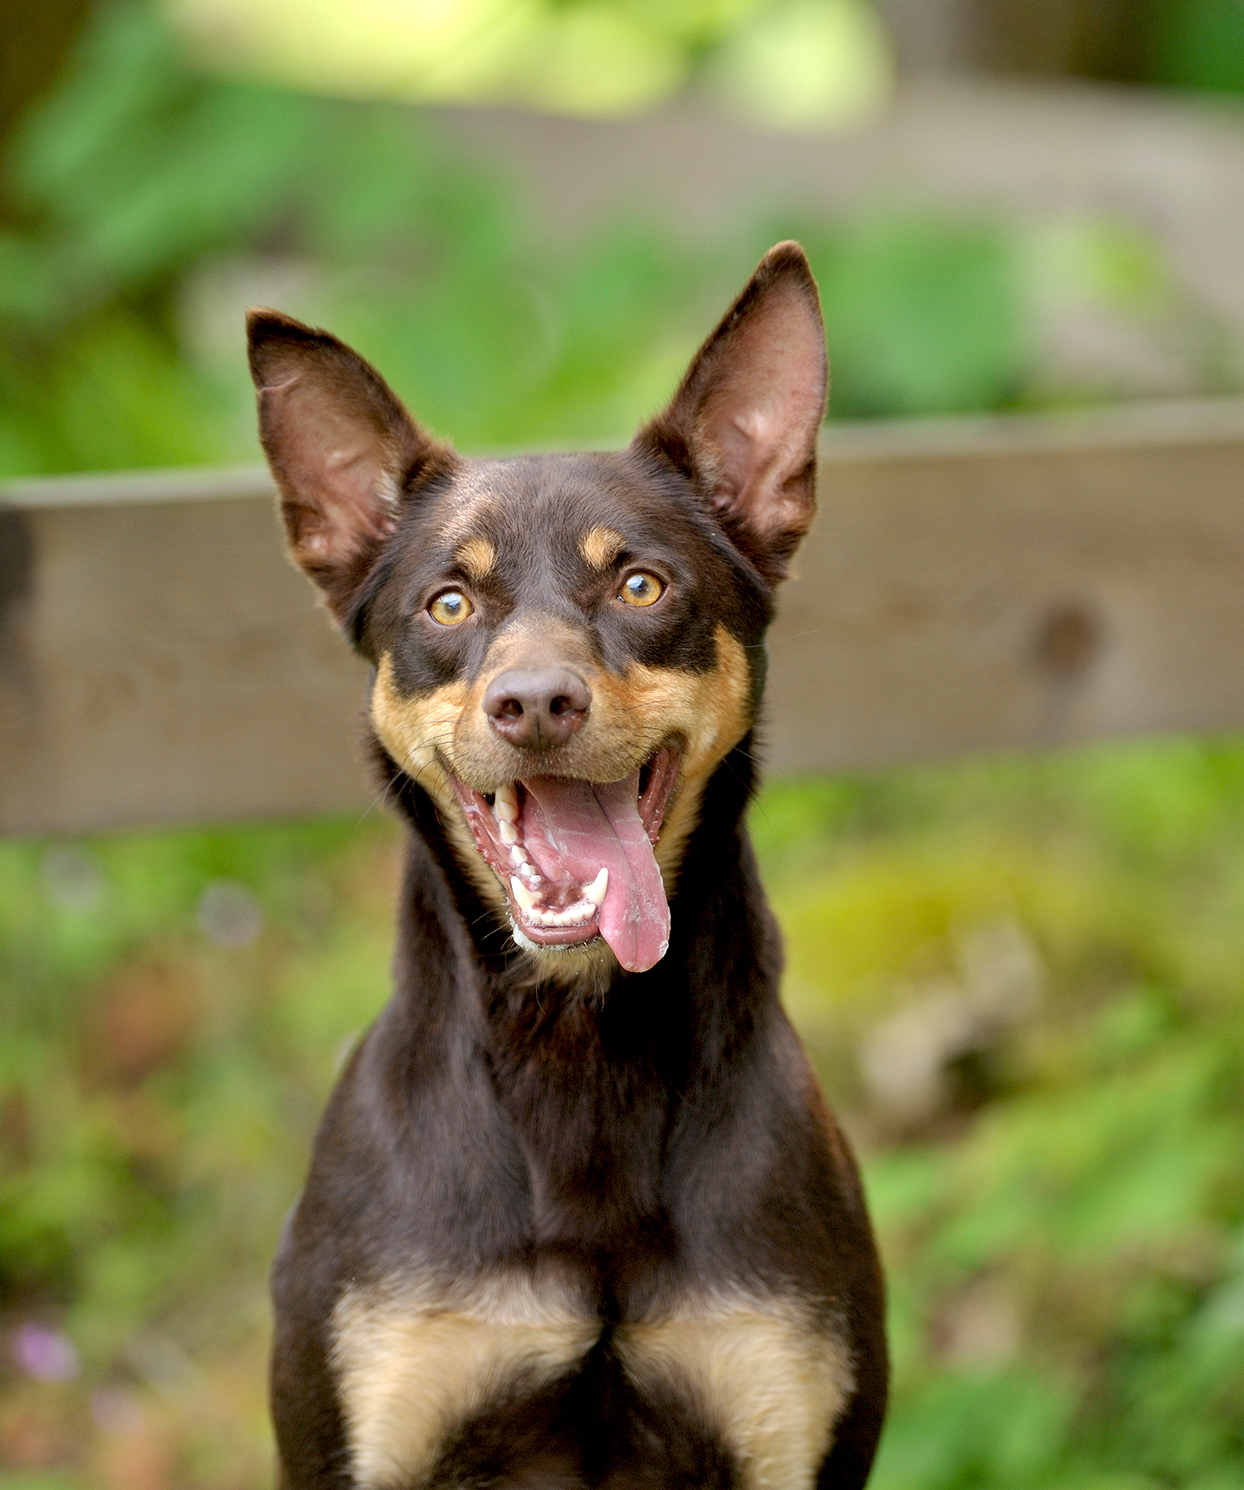 Outdoor portrait of chocolate Australian Kelpie sticking tongue out at camera